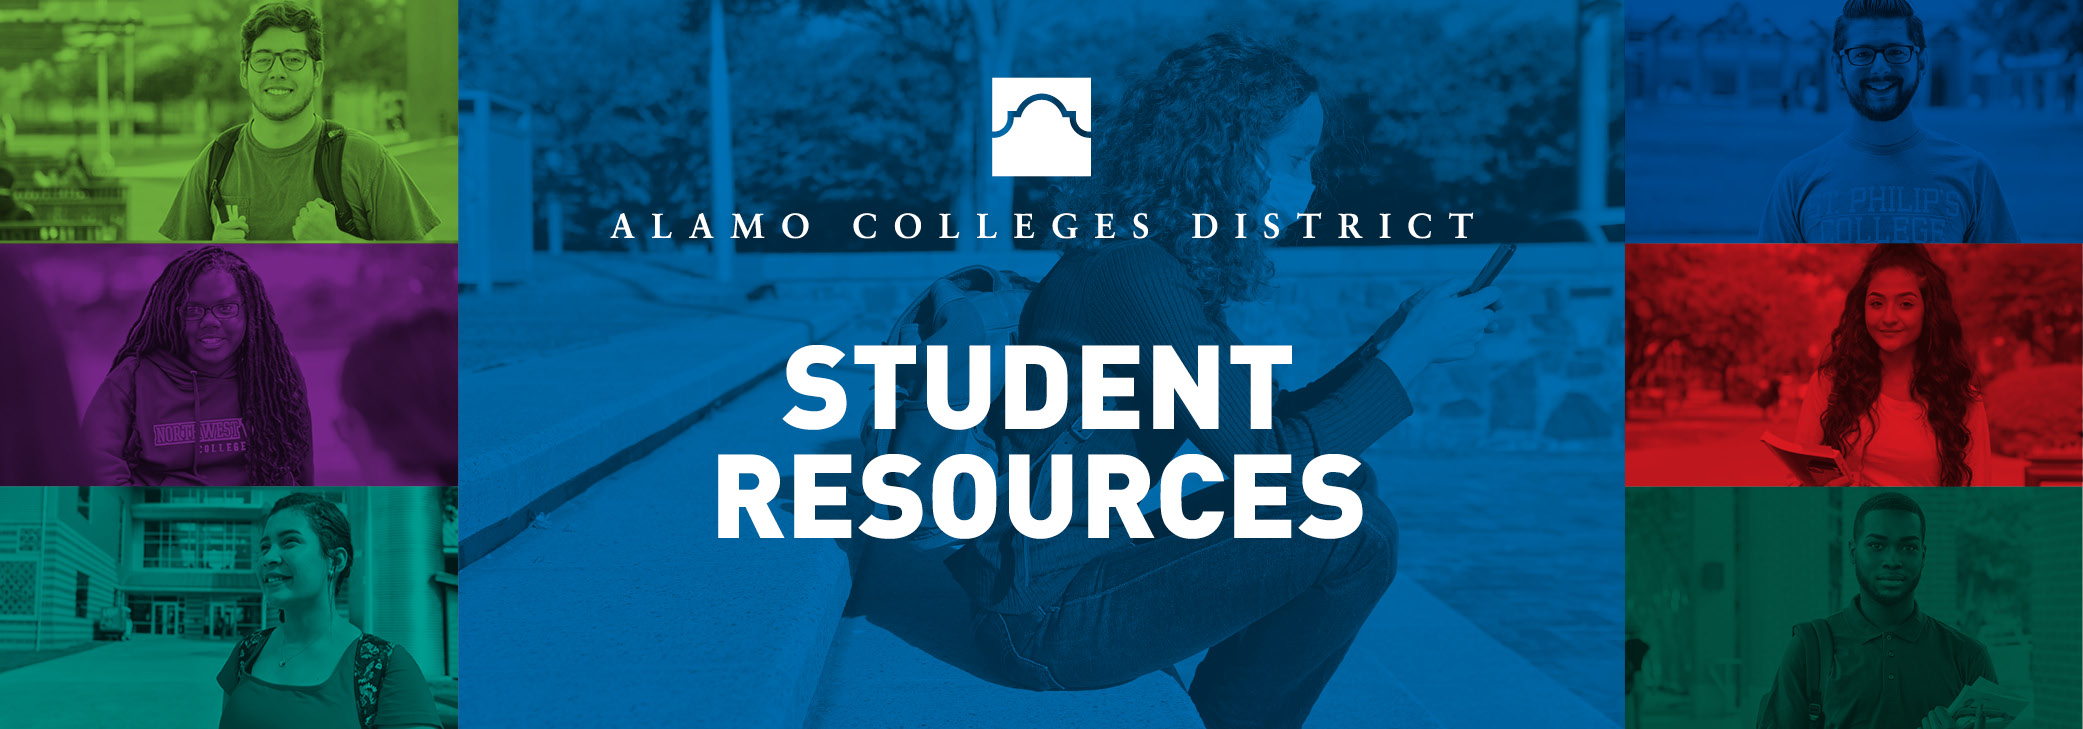 Student Resources Web Header.jpg